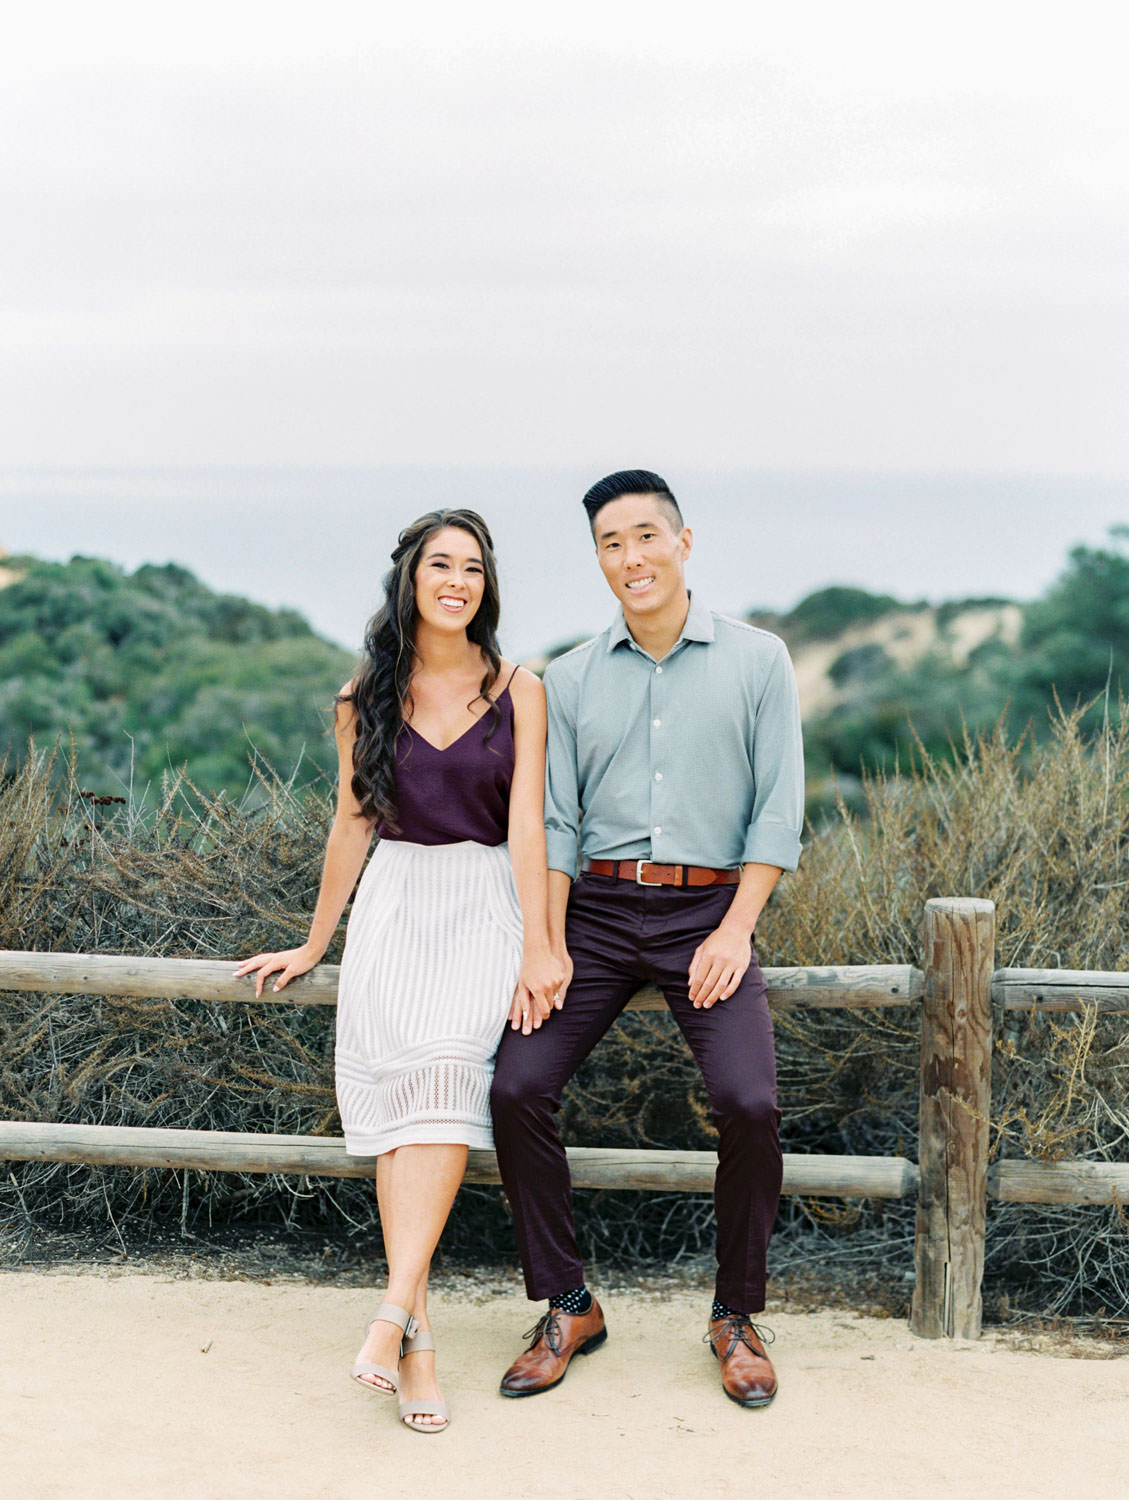 Engagement photo outfit ideas. Bride wearing a white skirt and a plum top that matches the groom's pants. Torrey Pines Engagement Photos on film by Cavin Elizabeth Photography.